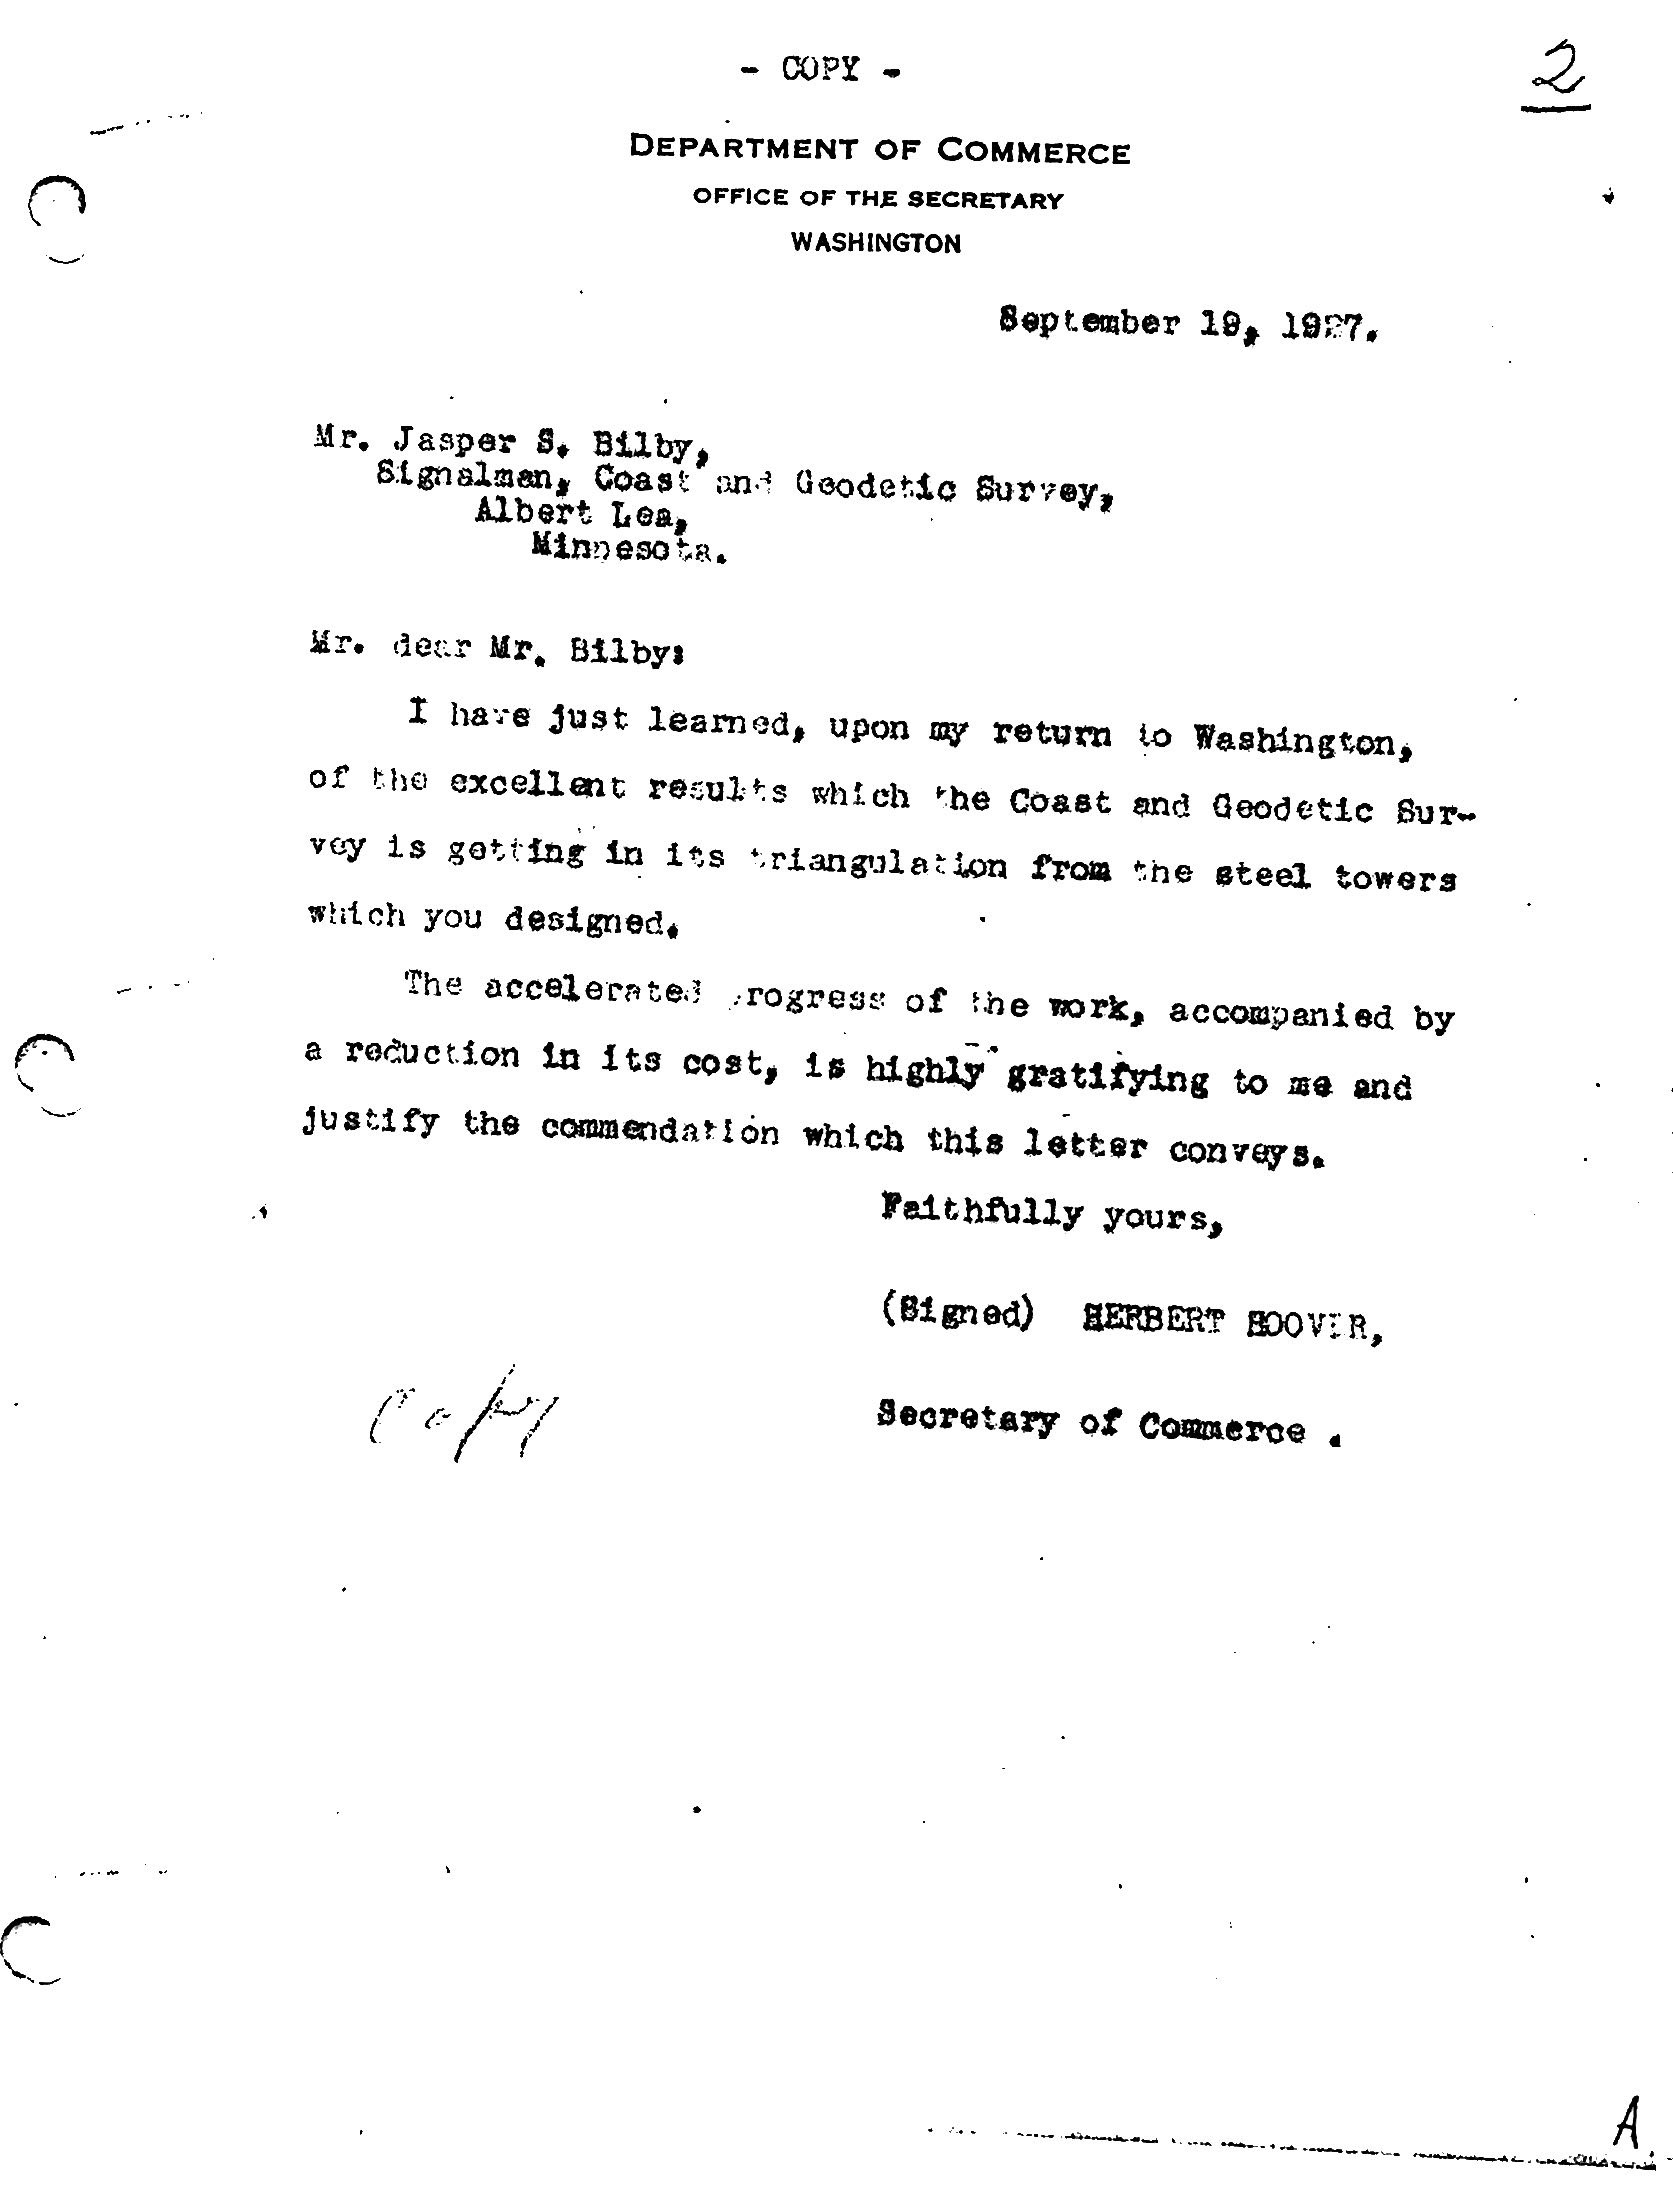 Letter from Secretary of Commerce Herbert Hoover to Jasper Sherman Bilby. Hoover commends Bilby for his invention of the Bilby Steel Tower. Courtesy of Surveyors Historical Society Collection.